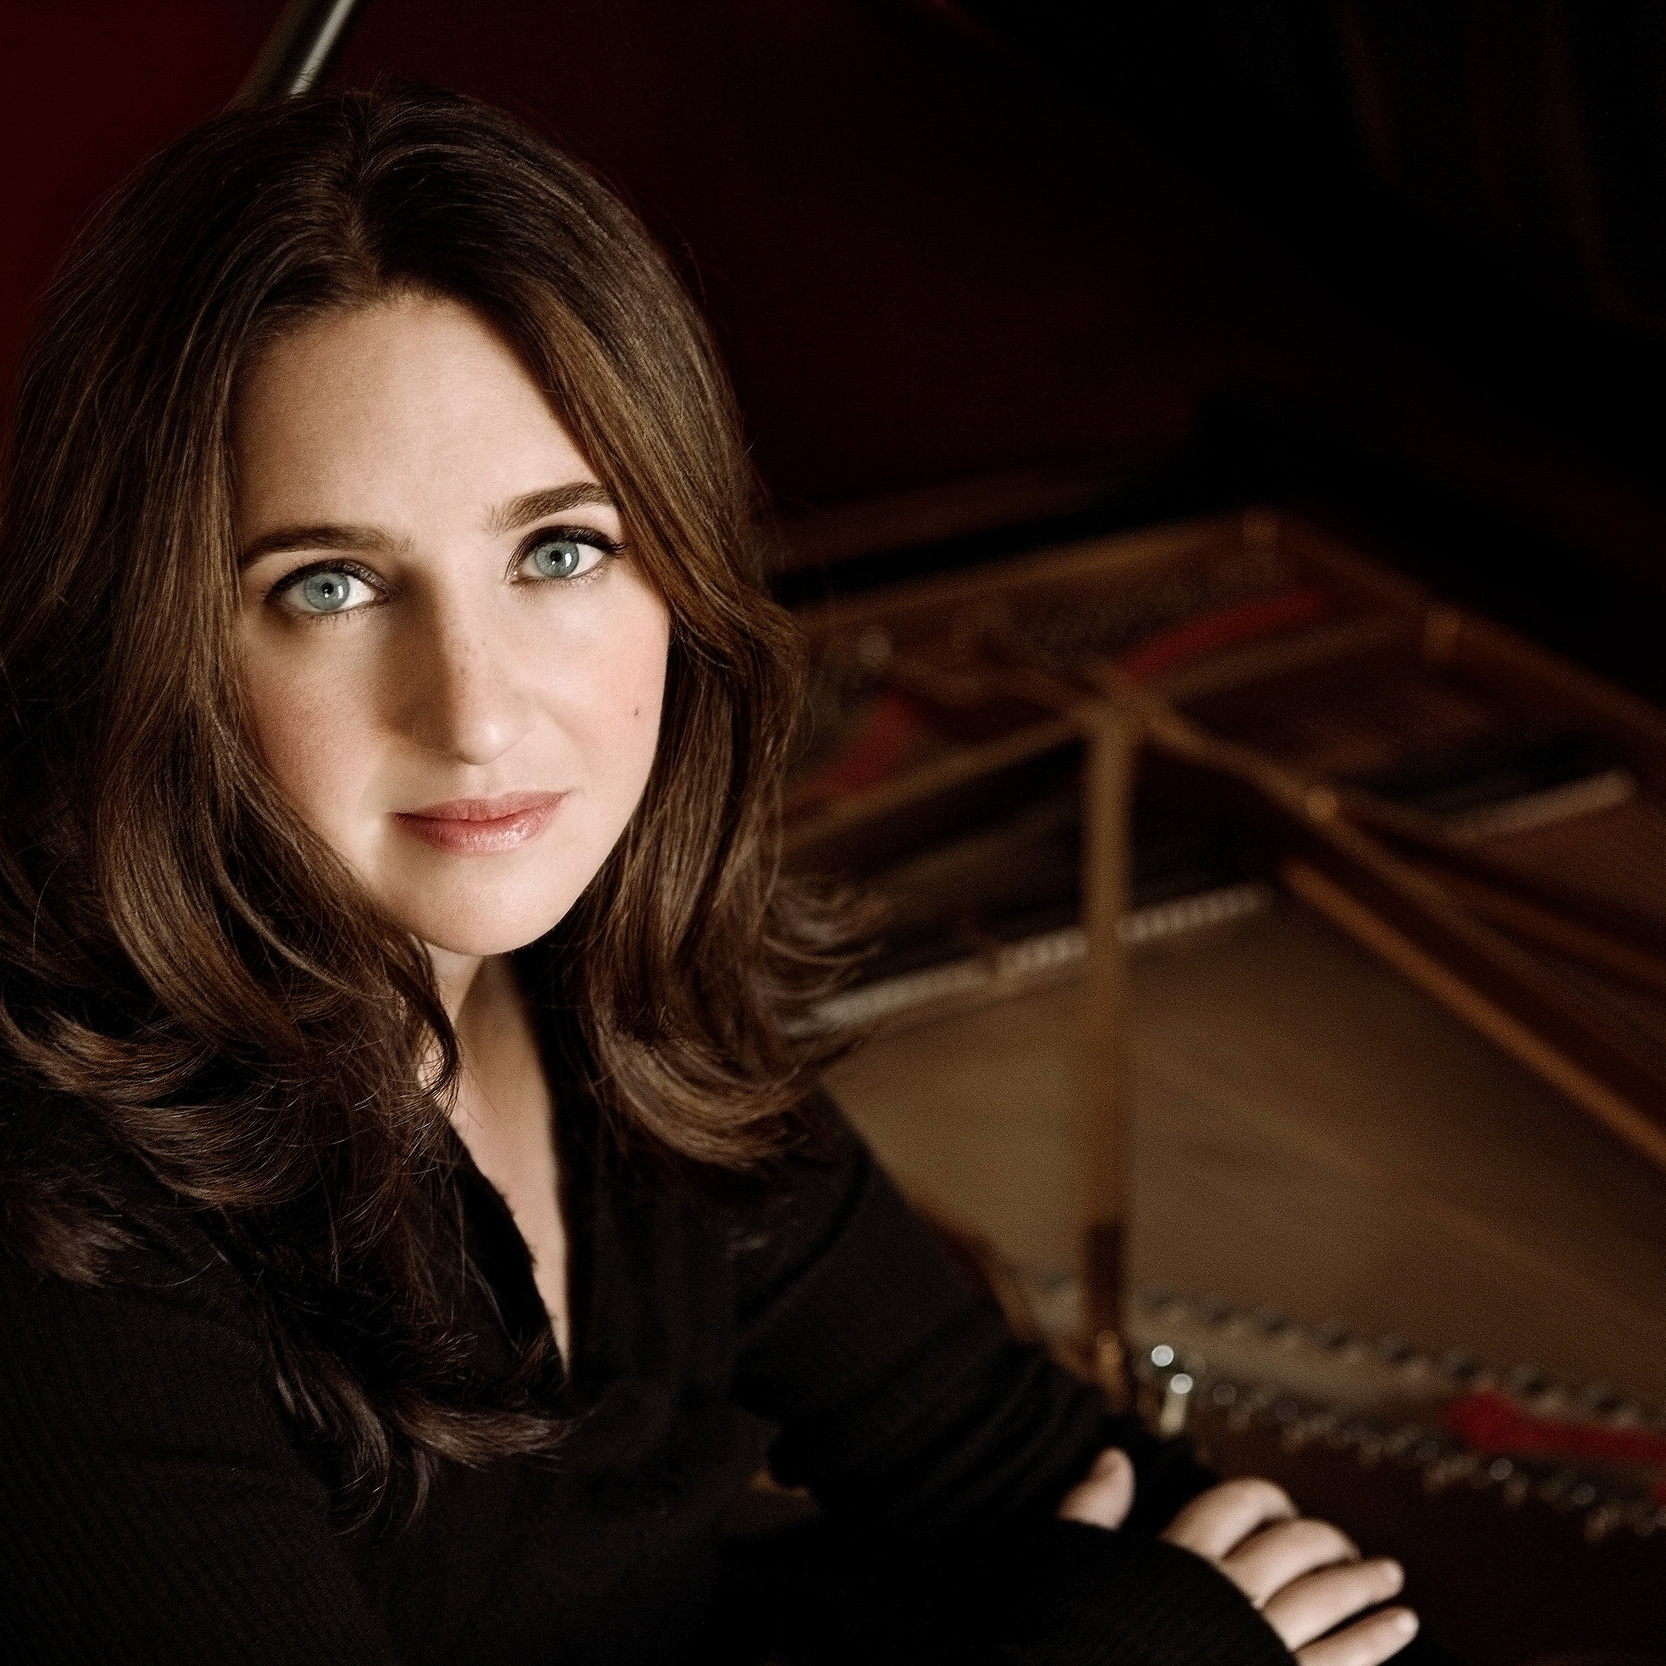 Piano Master Class - April 4 - 5:00pmWalker Recital Hall | Mercyhurst UniversityFree and open to the publicWatch as renowned pianist Simone Dinnerstein works one-on-one with local piano students in the perfect, intimate performance setting.